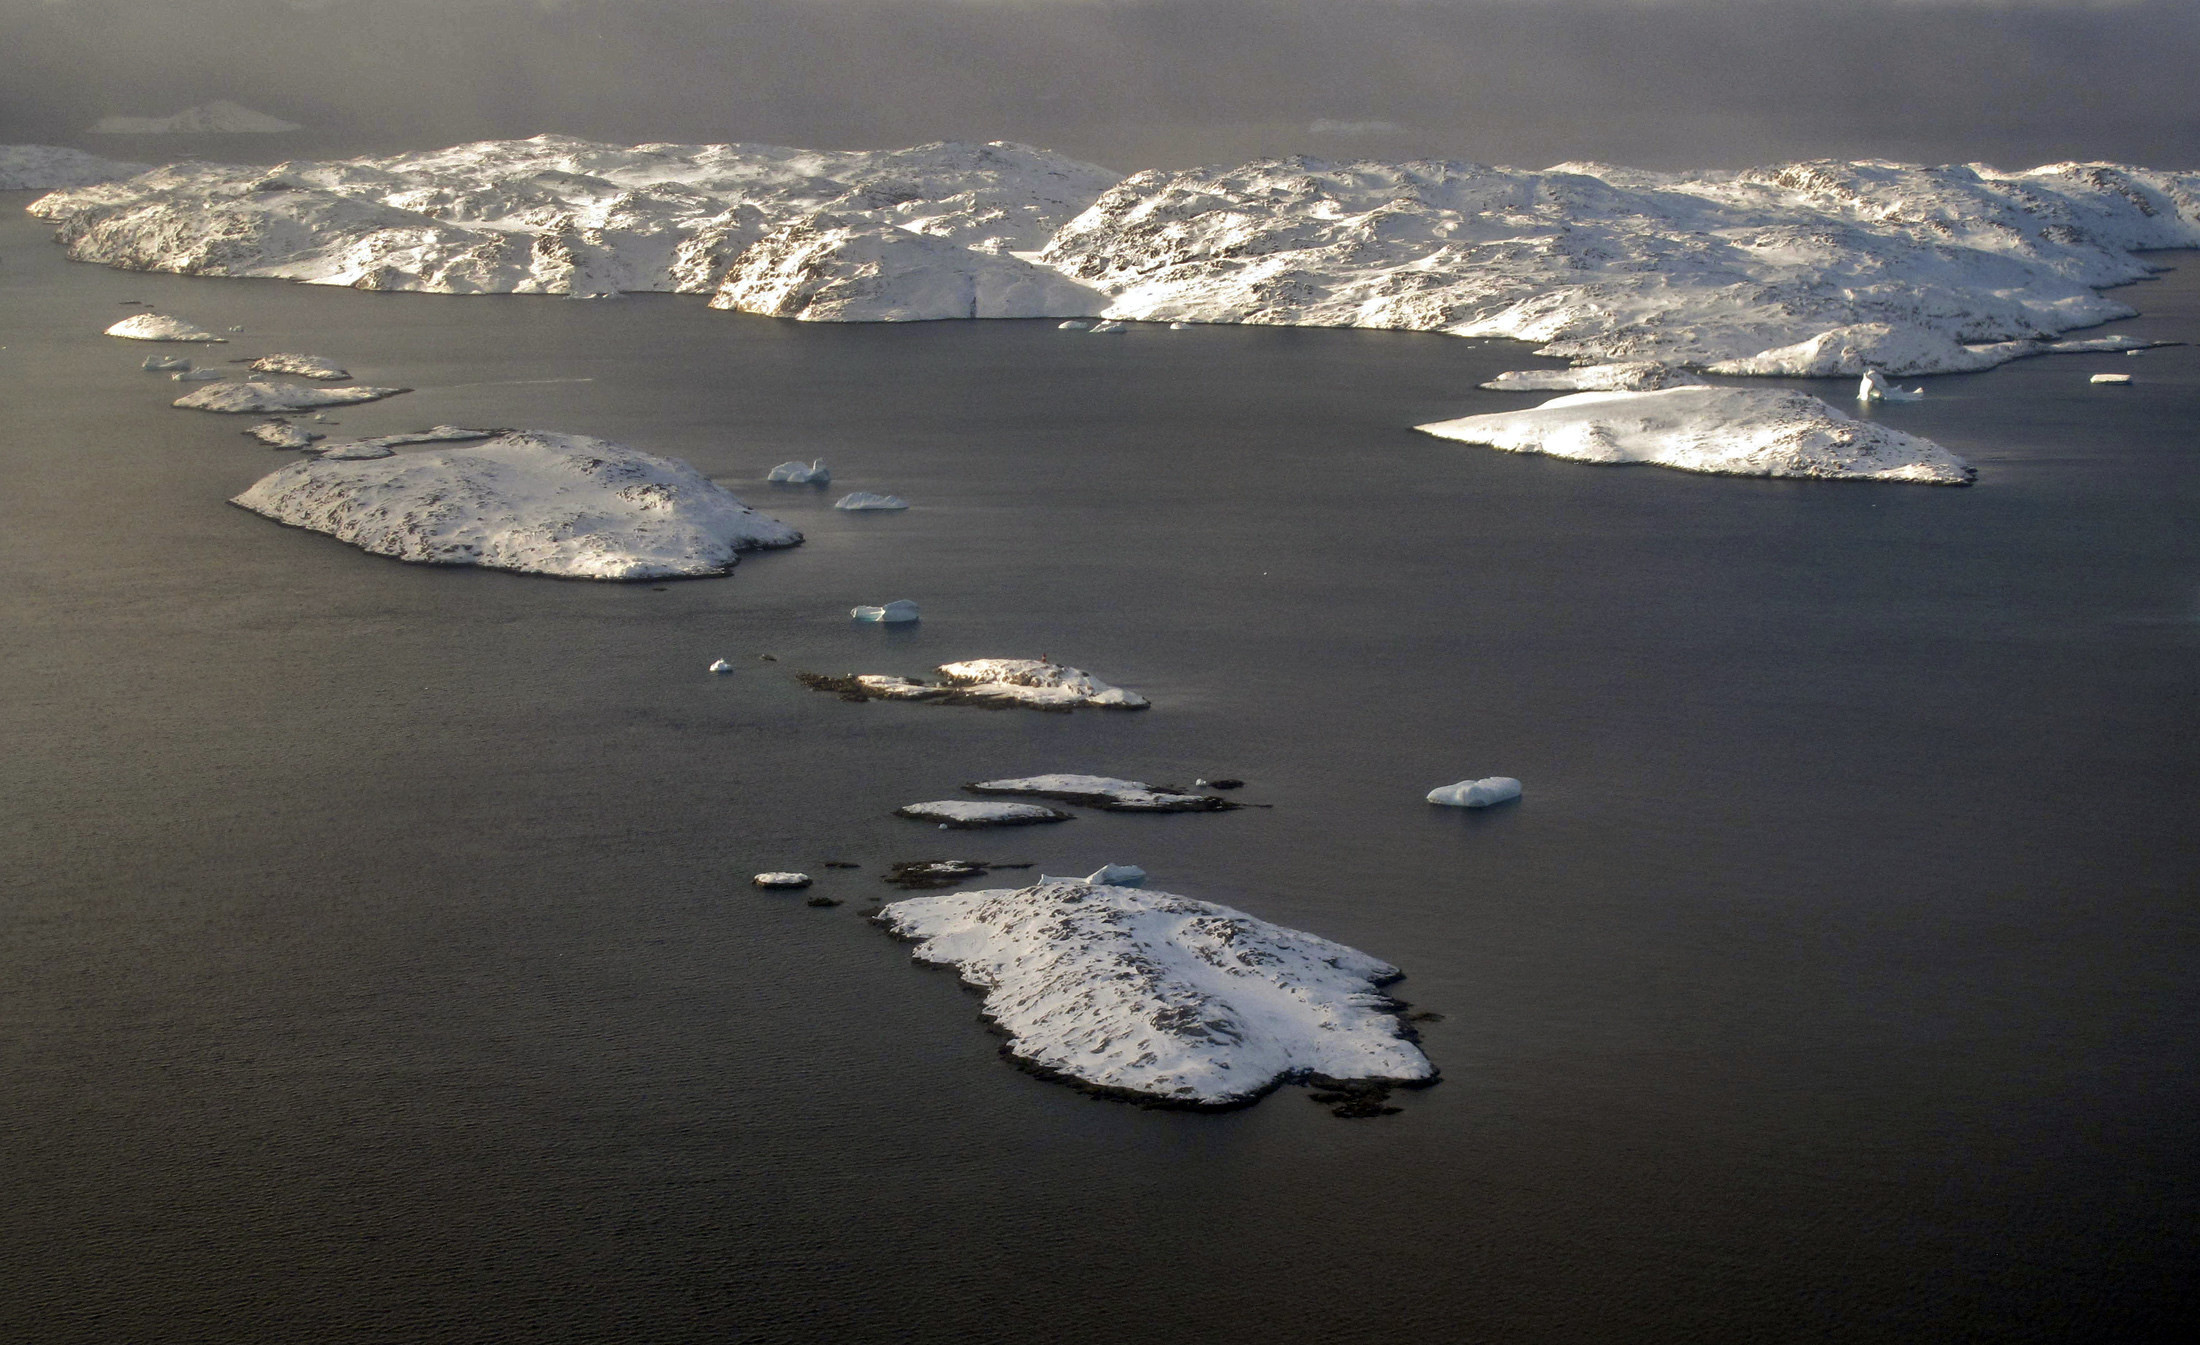 The snow-covered landscape is seen in an aerial photo near the town of Uummannaq in western Greenland March 17, 2010. Dutch artist Ap Verheggen plans to erect two giant sculptures on a piece of Greenland's sea ice and monitor them drifting away after the glacier breaks off.  REUTERS/Svebor Kranjc (GREENLAND - Tags: ENVIRONMENT ENTERTAINMENT) - GM1E63I09X801